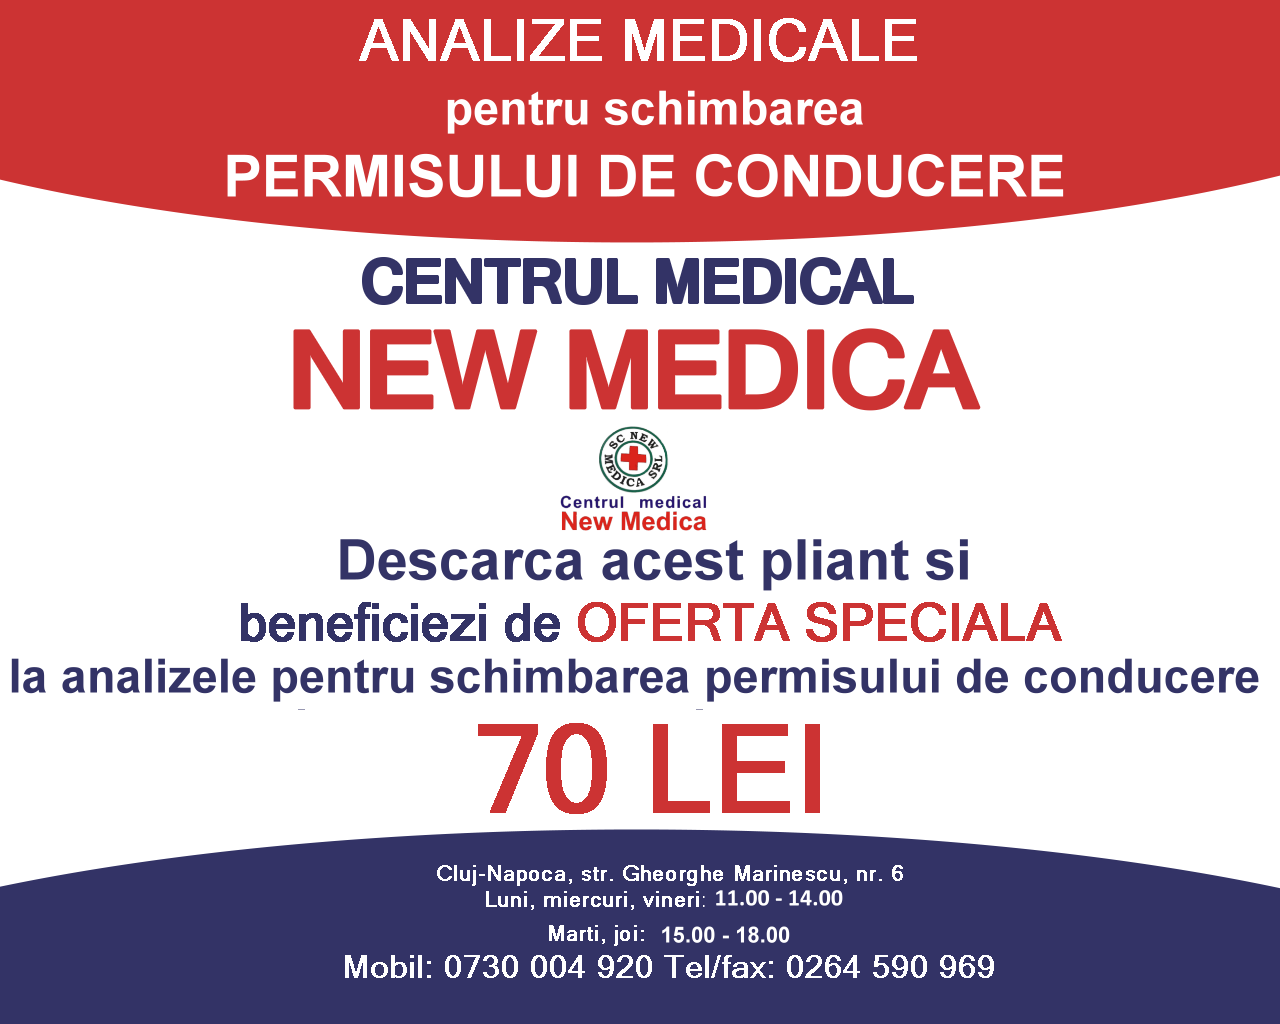 Centrul medical NEW MEDICA Cluj-Napoca – Analize medicale si Servicii medicale complete